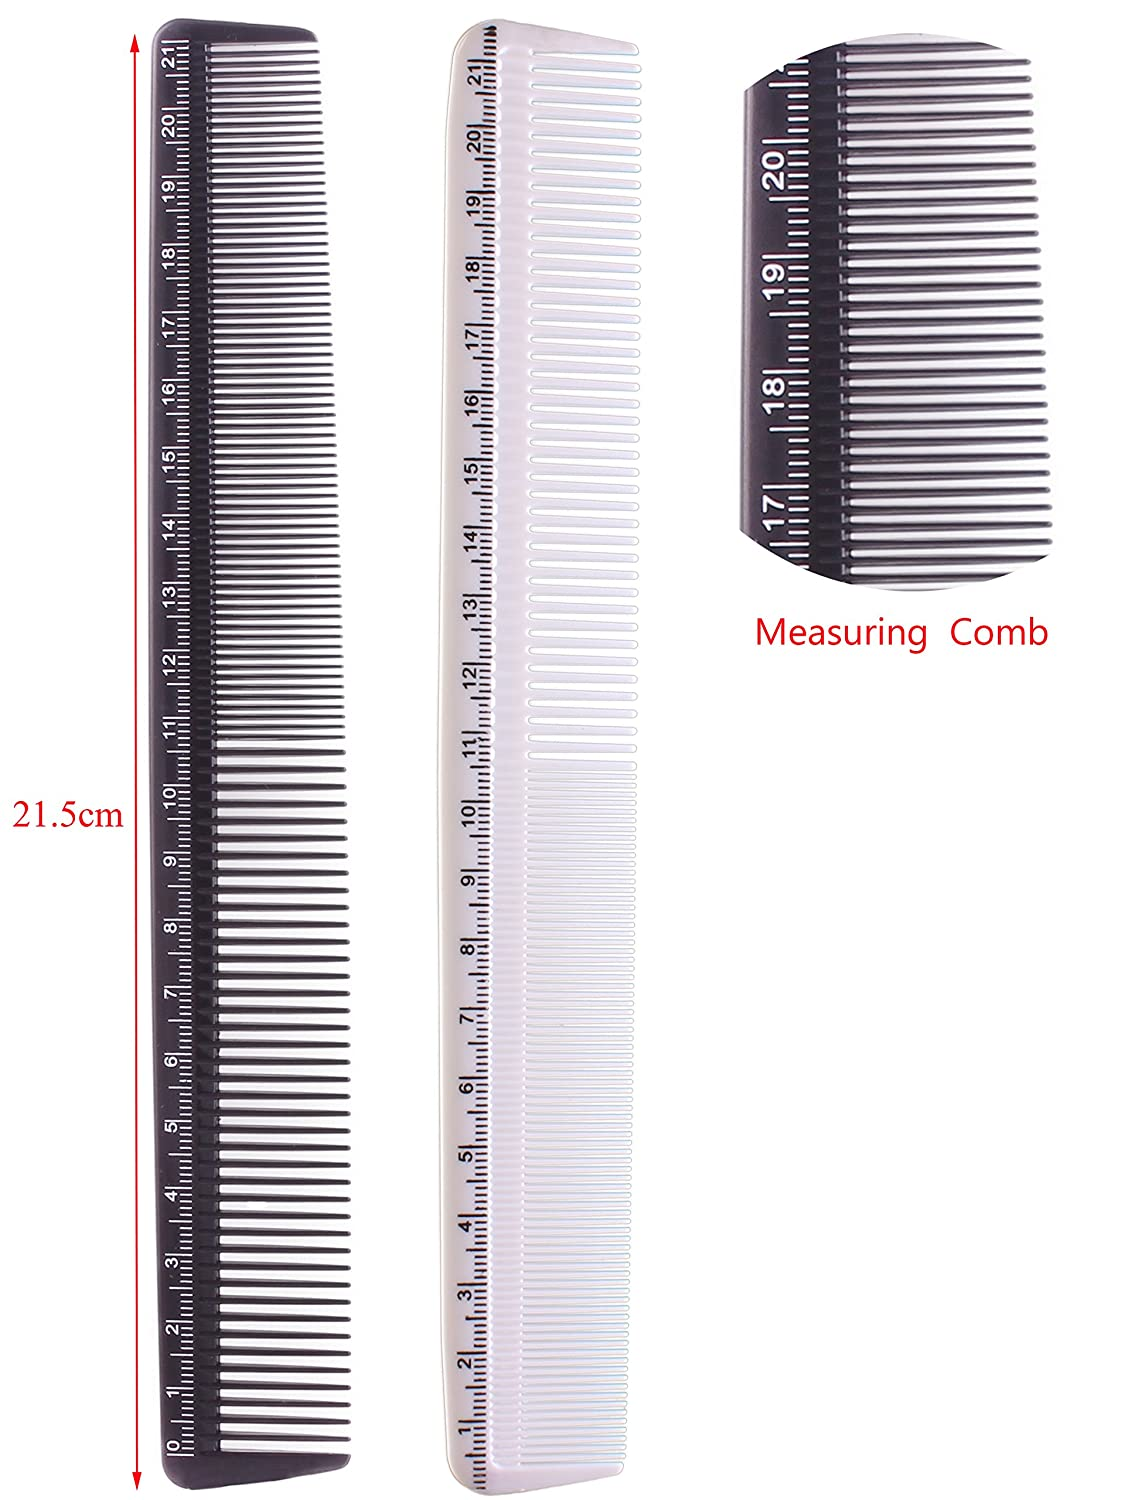 Professional Hair Cutting Comb Set, Salon Styling Measure Combs,Black and  White